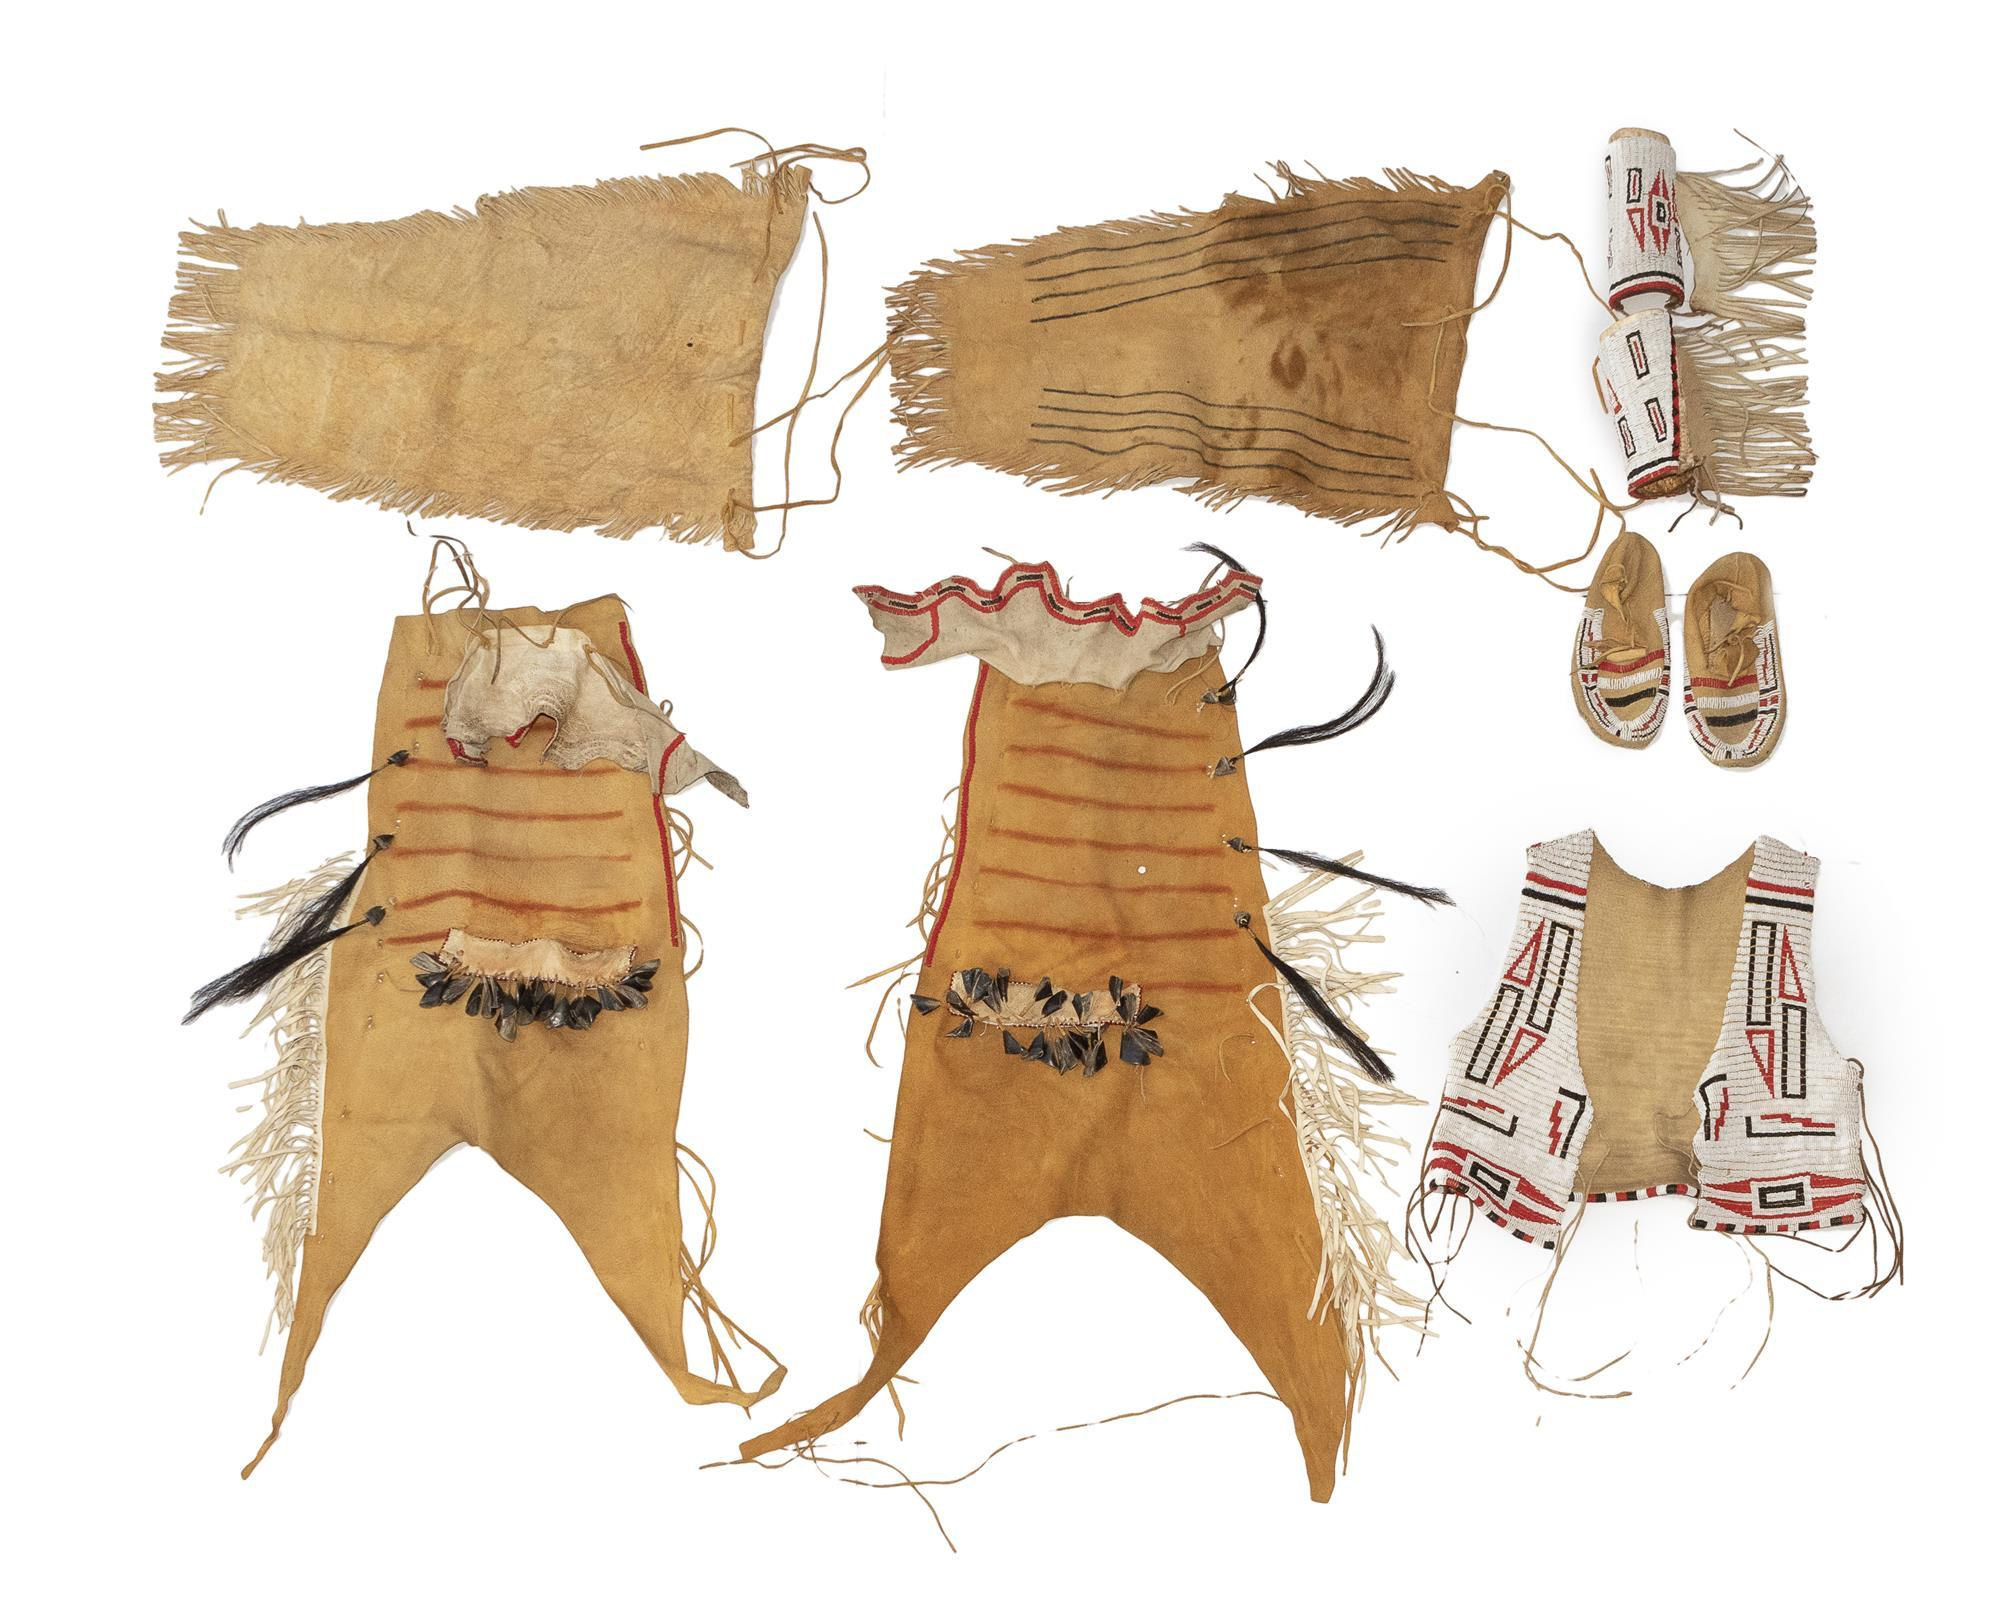 A Plains man's beaded hide outfit